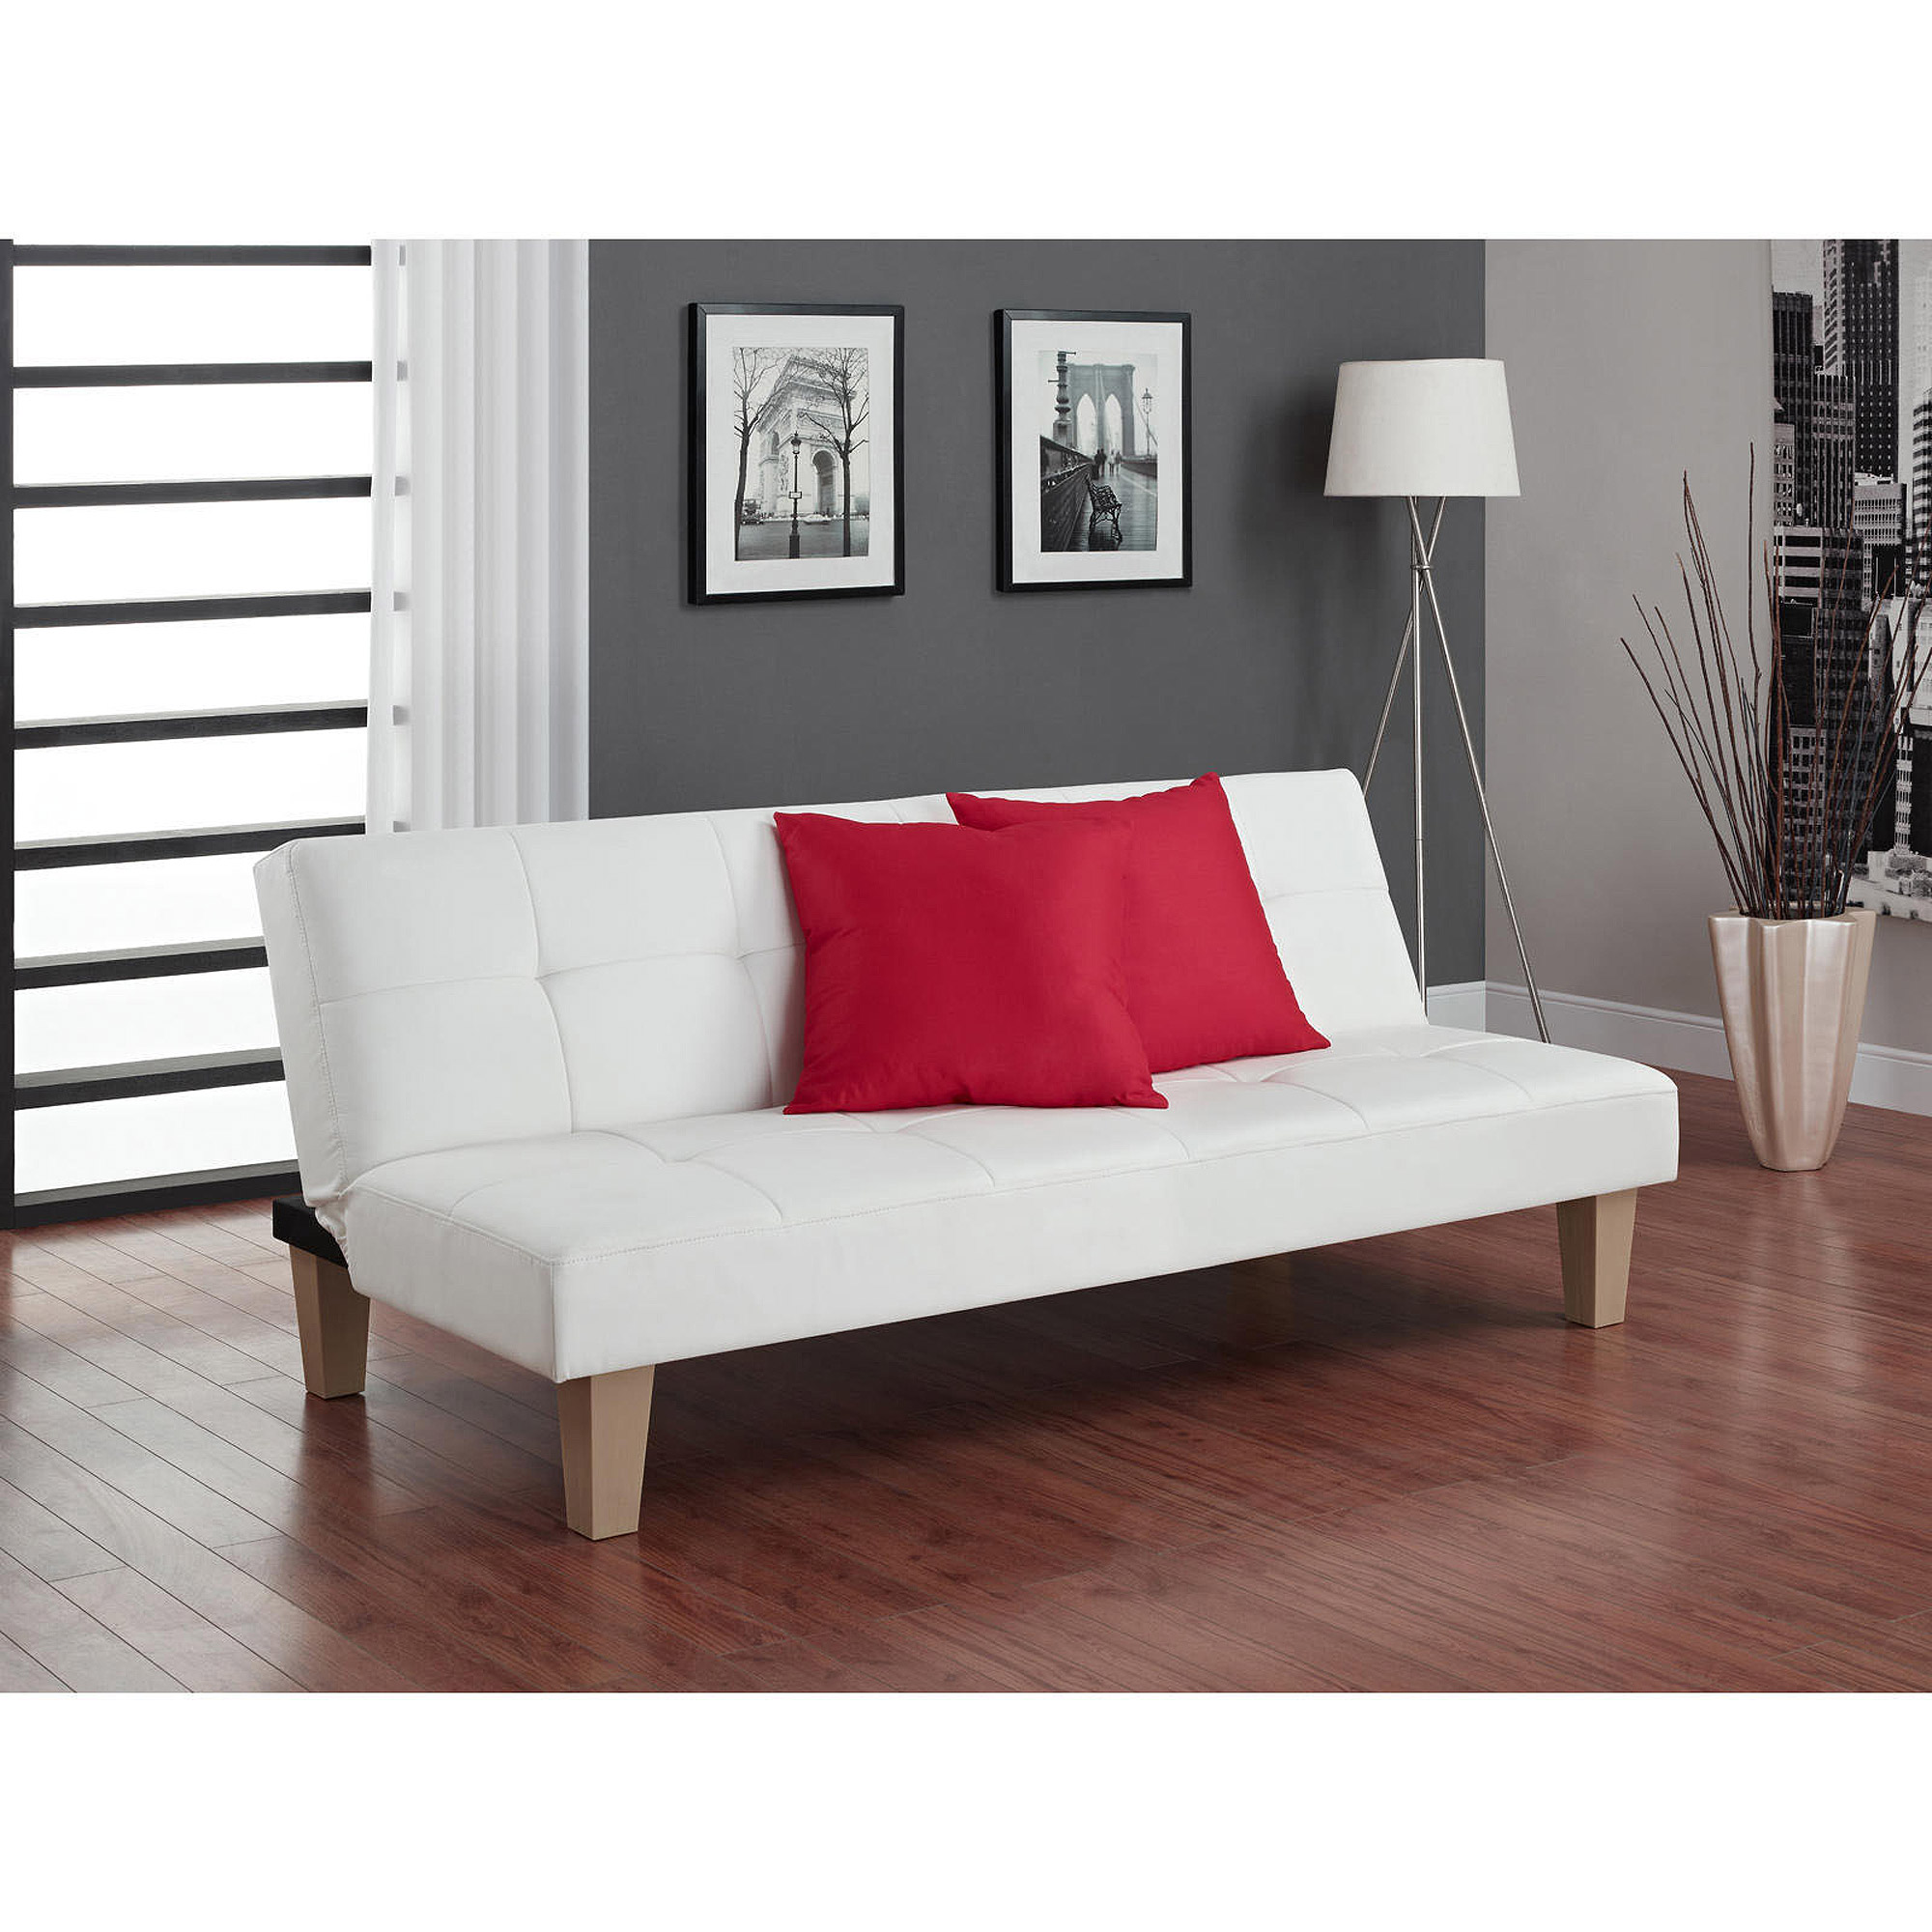 DHP Aria Futon Sofa Bed, White Faux Leather Upholstery by Dorel Home Products